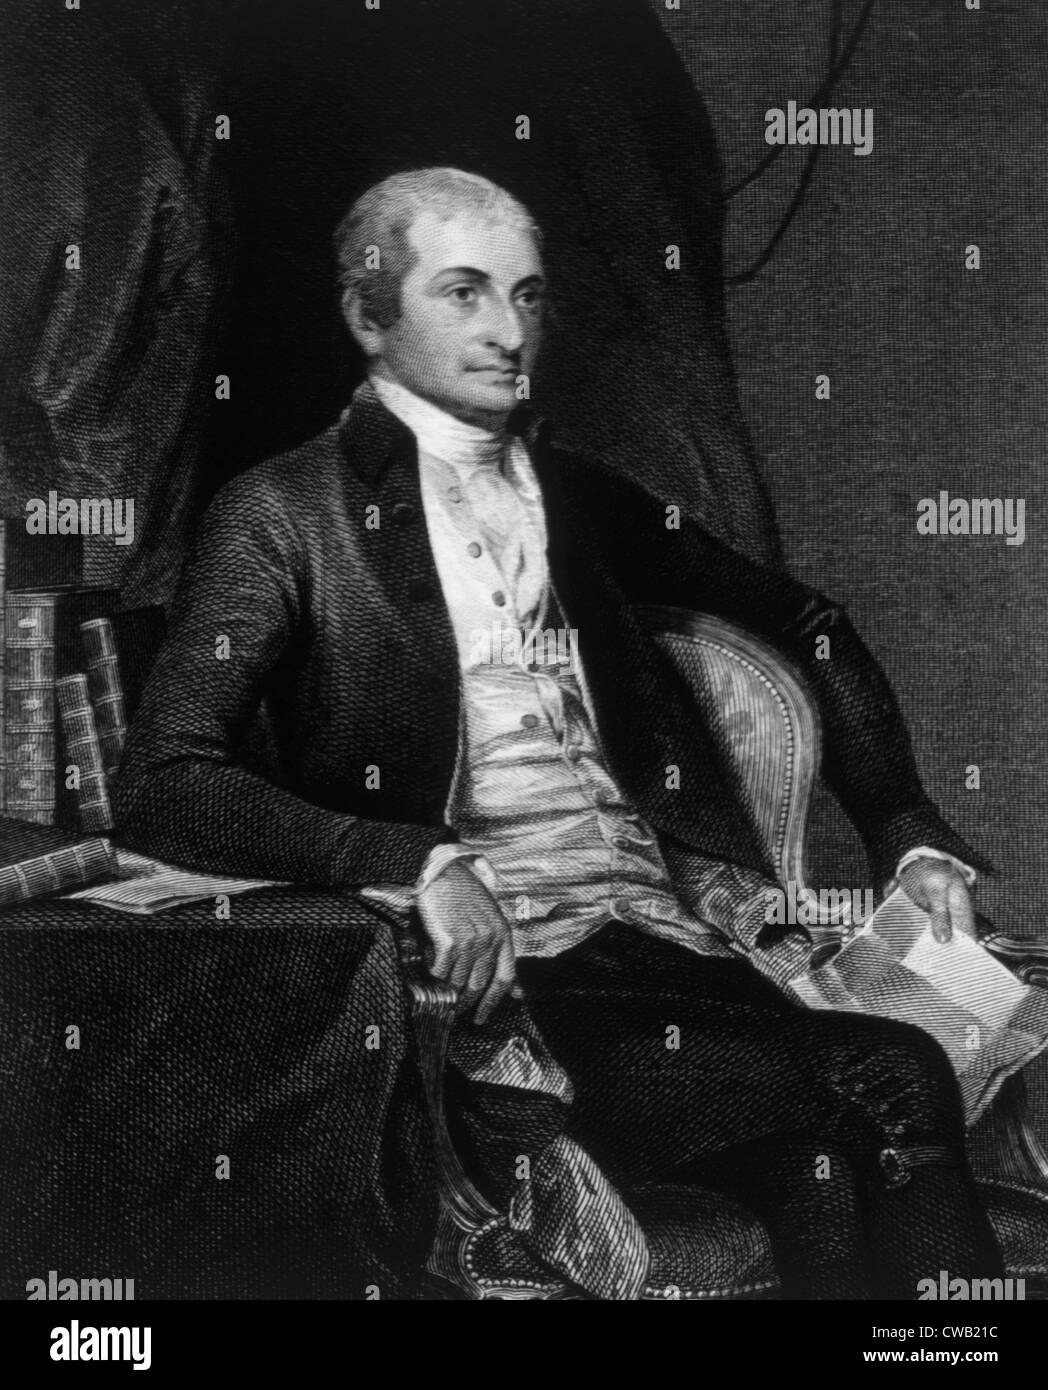 John Jay (1745-1829), first Chief Justice of U.S. Supreme Court (1789-1795), engraving 1859 - Stock Image